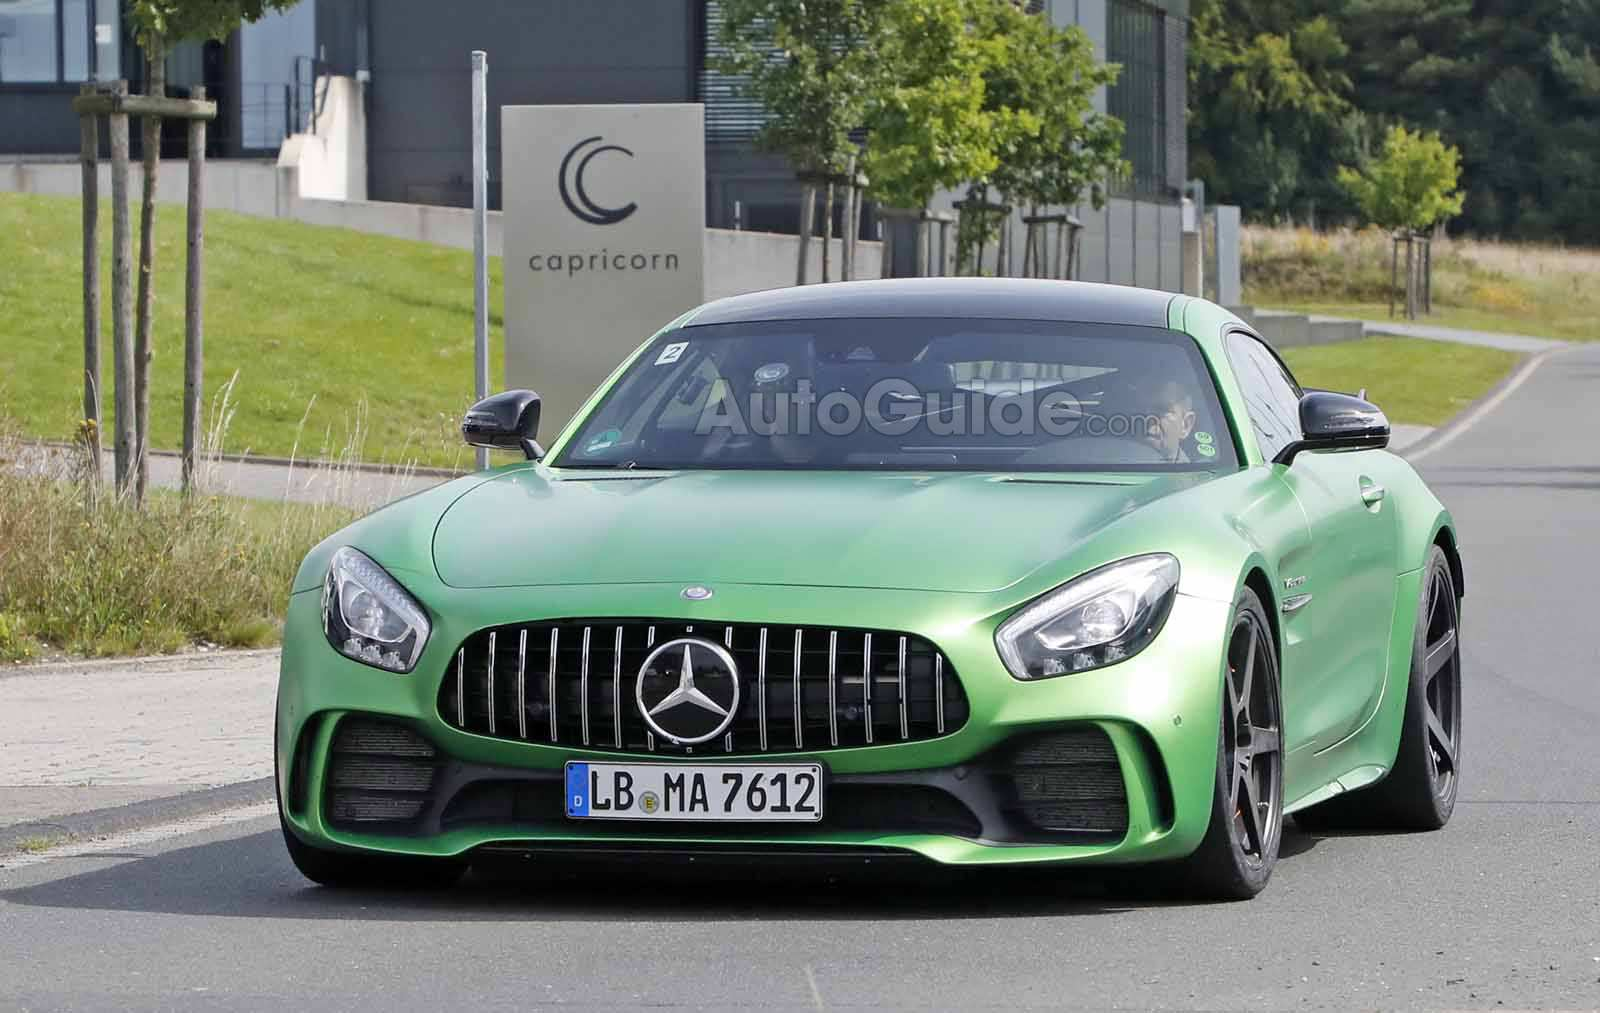 75 New 2020 Mercedes Black Series Pictures with 2020 Mercedes Black Series